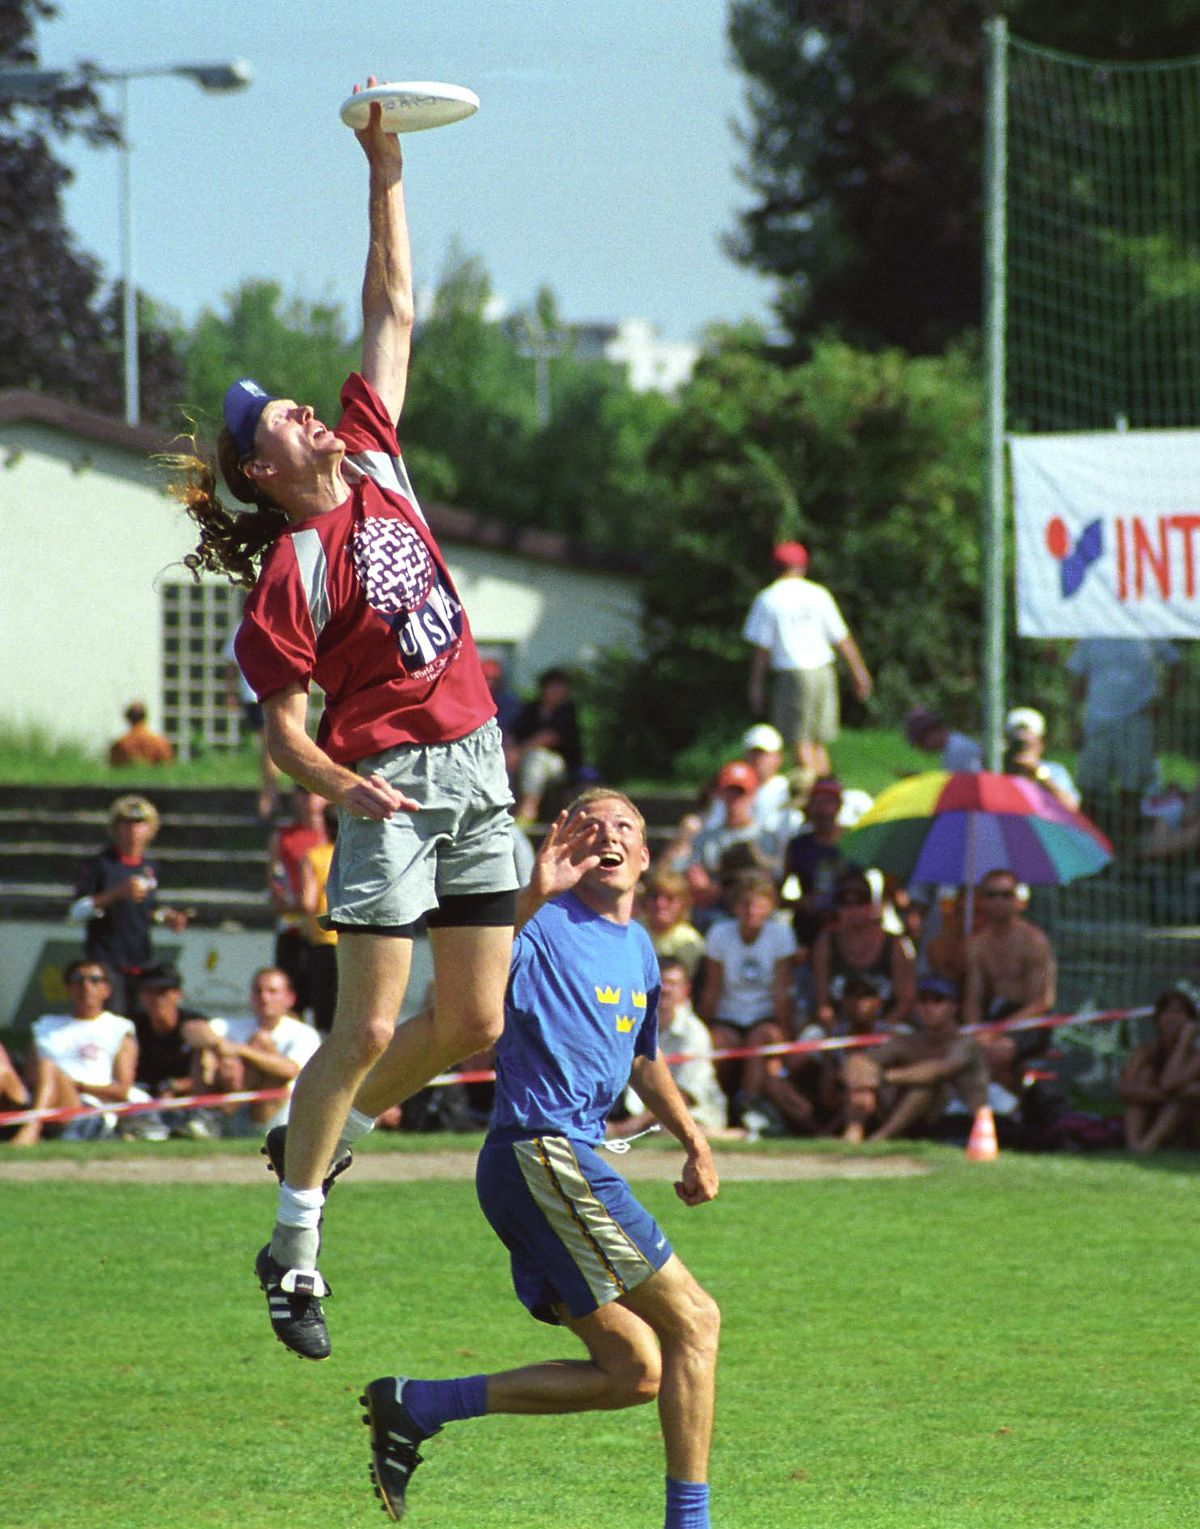 The Ultimate Teenage Summer Bucket List To Keep Everyone: Flying Disc Games